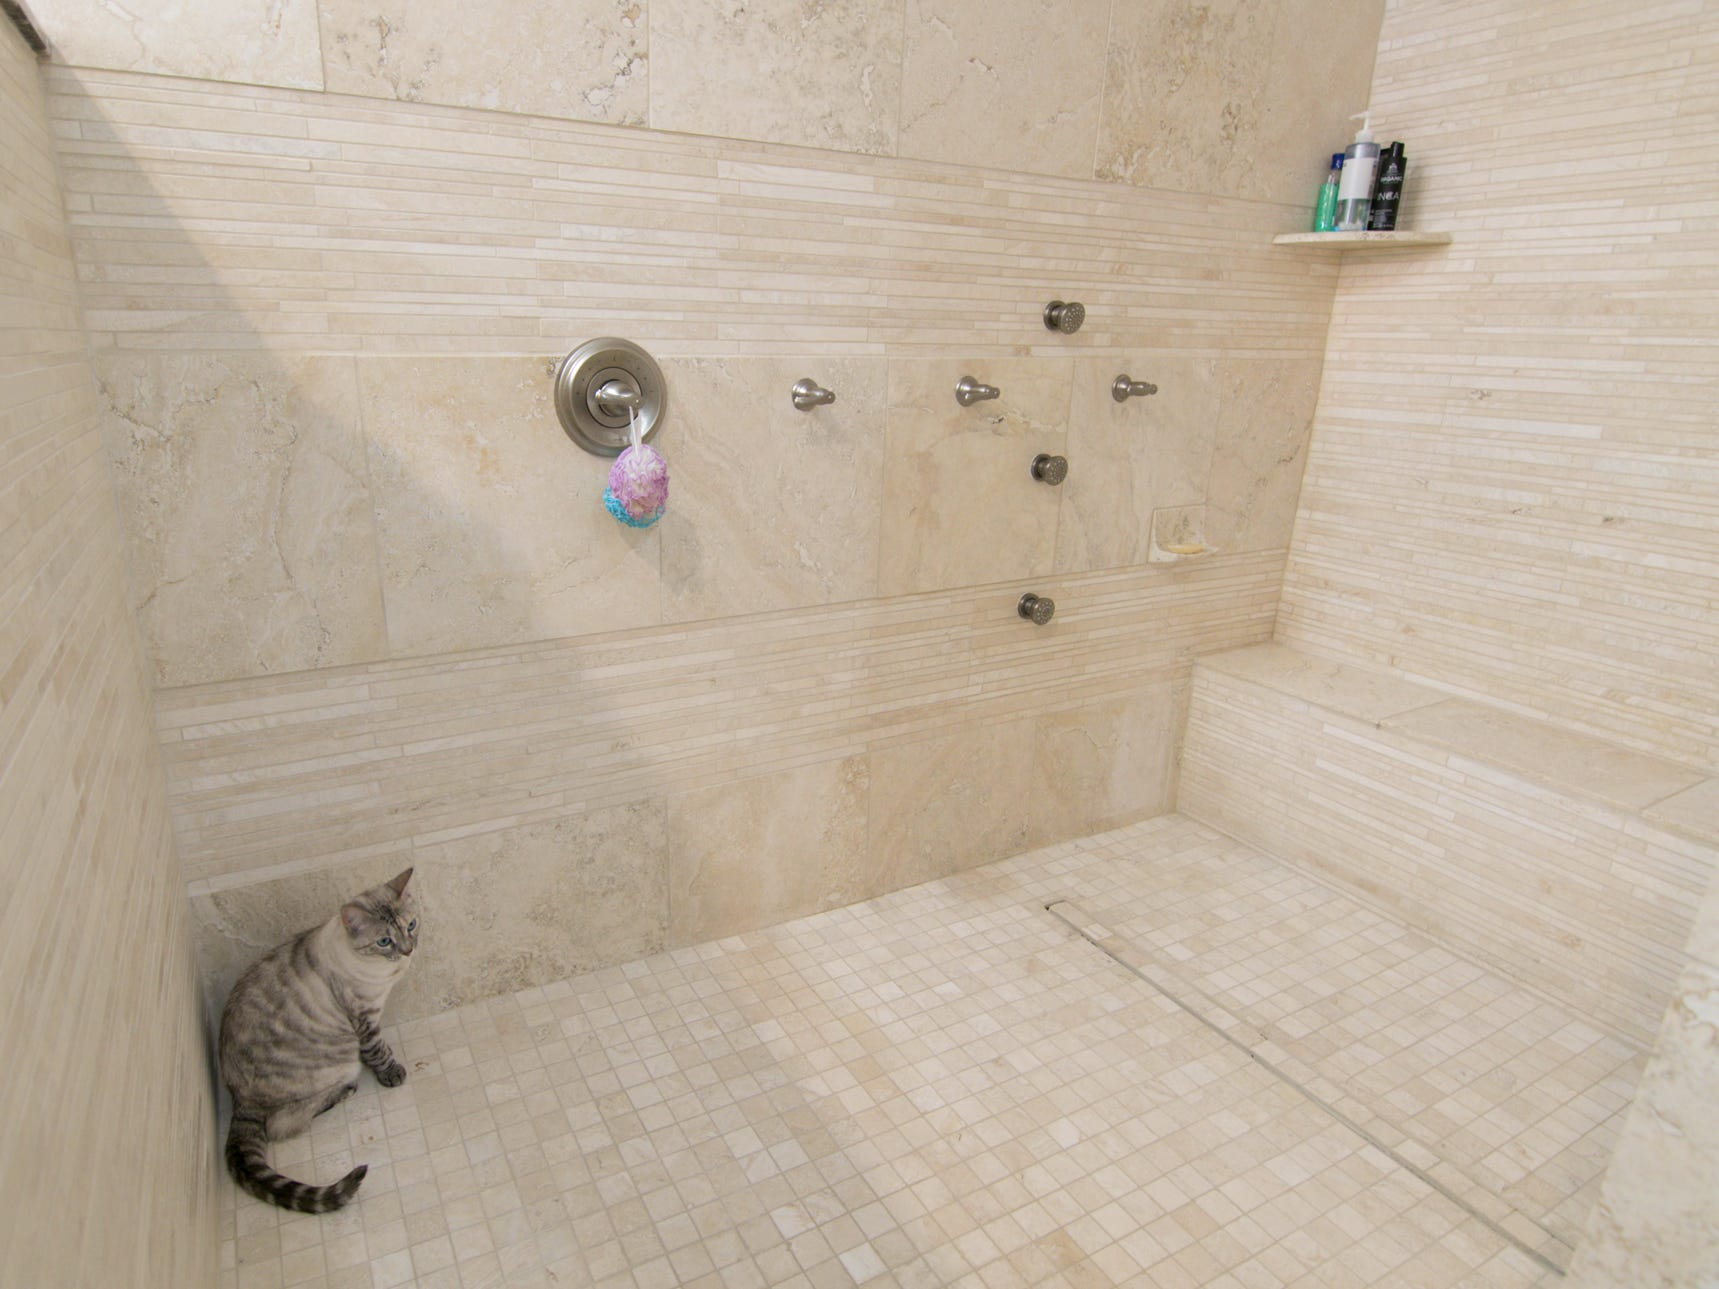 A Bengal ragdoll cat, the pet of Adam and Michelle Harris, takes refuge inside the master shower in the home on Worden Lake shown Friday, Jan. 4, 2019.